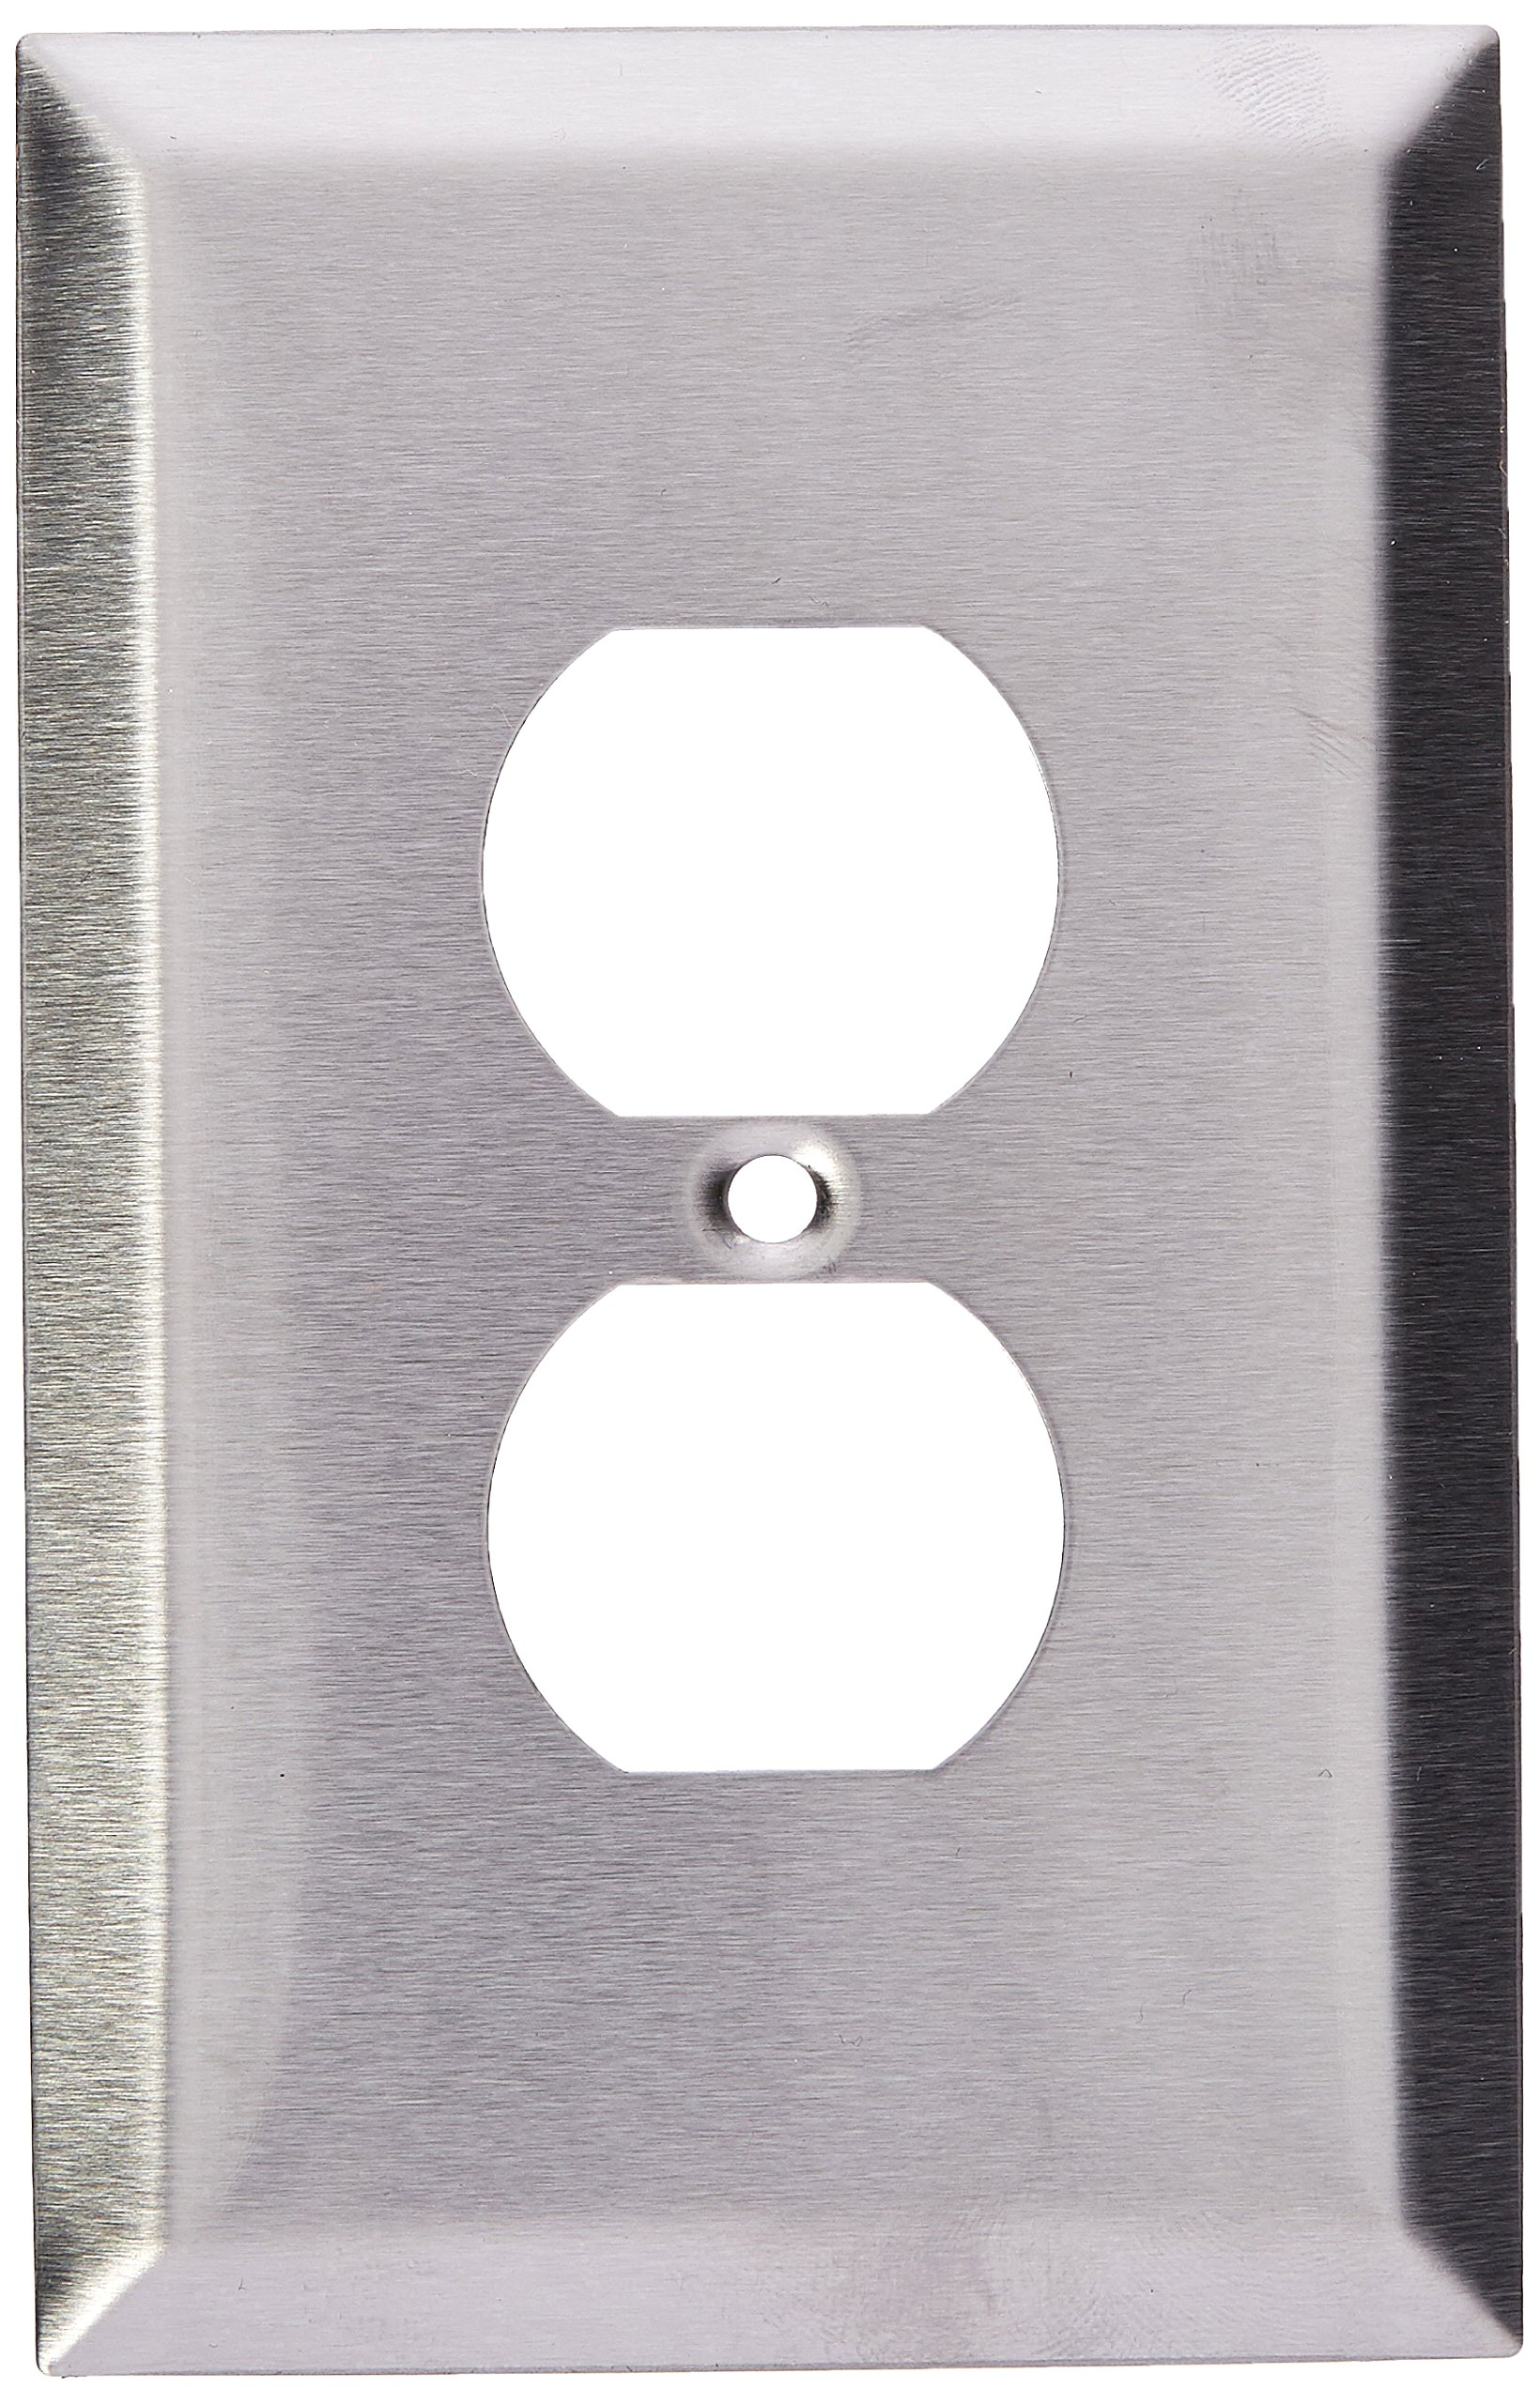 Morris 83730 430 Wall Plate, Oversize Duplex Receptacle, 1 Gang, Stainless Steel